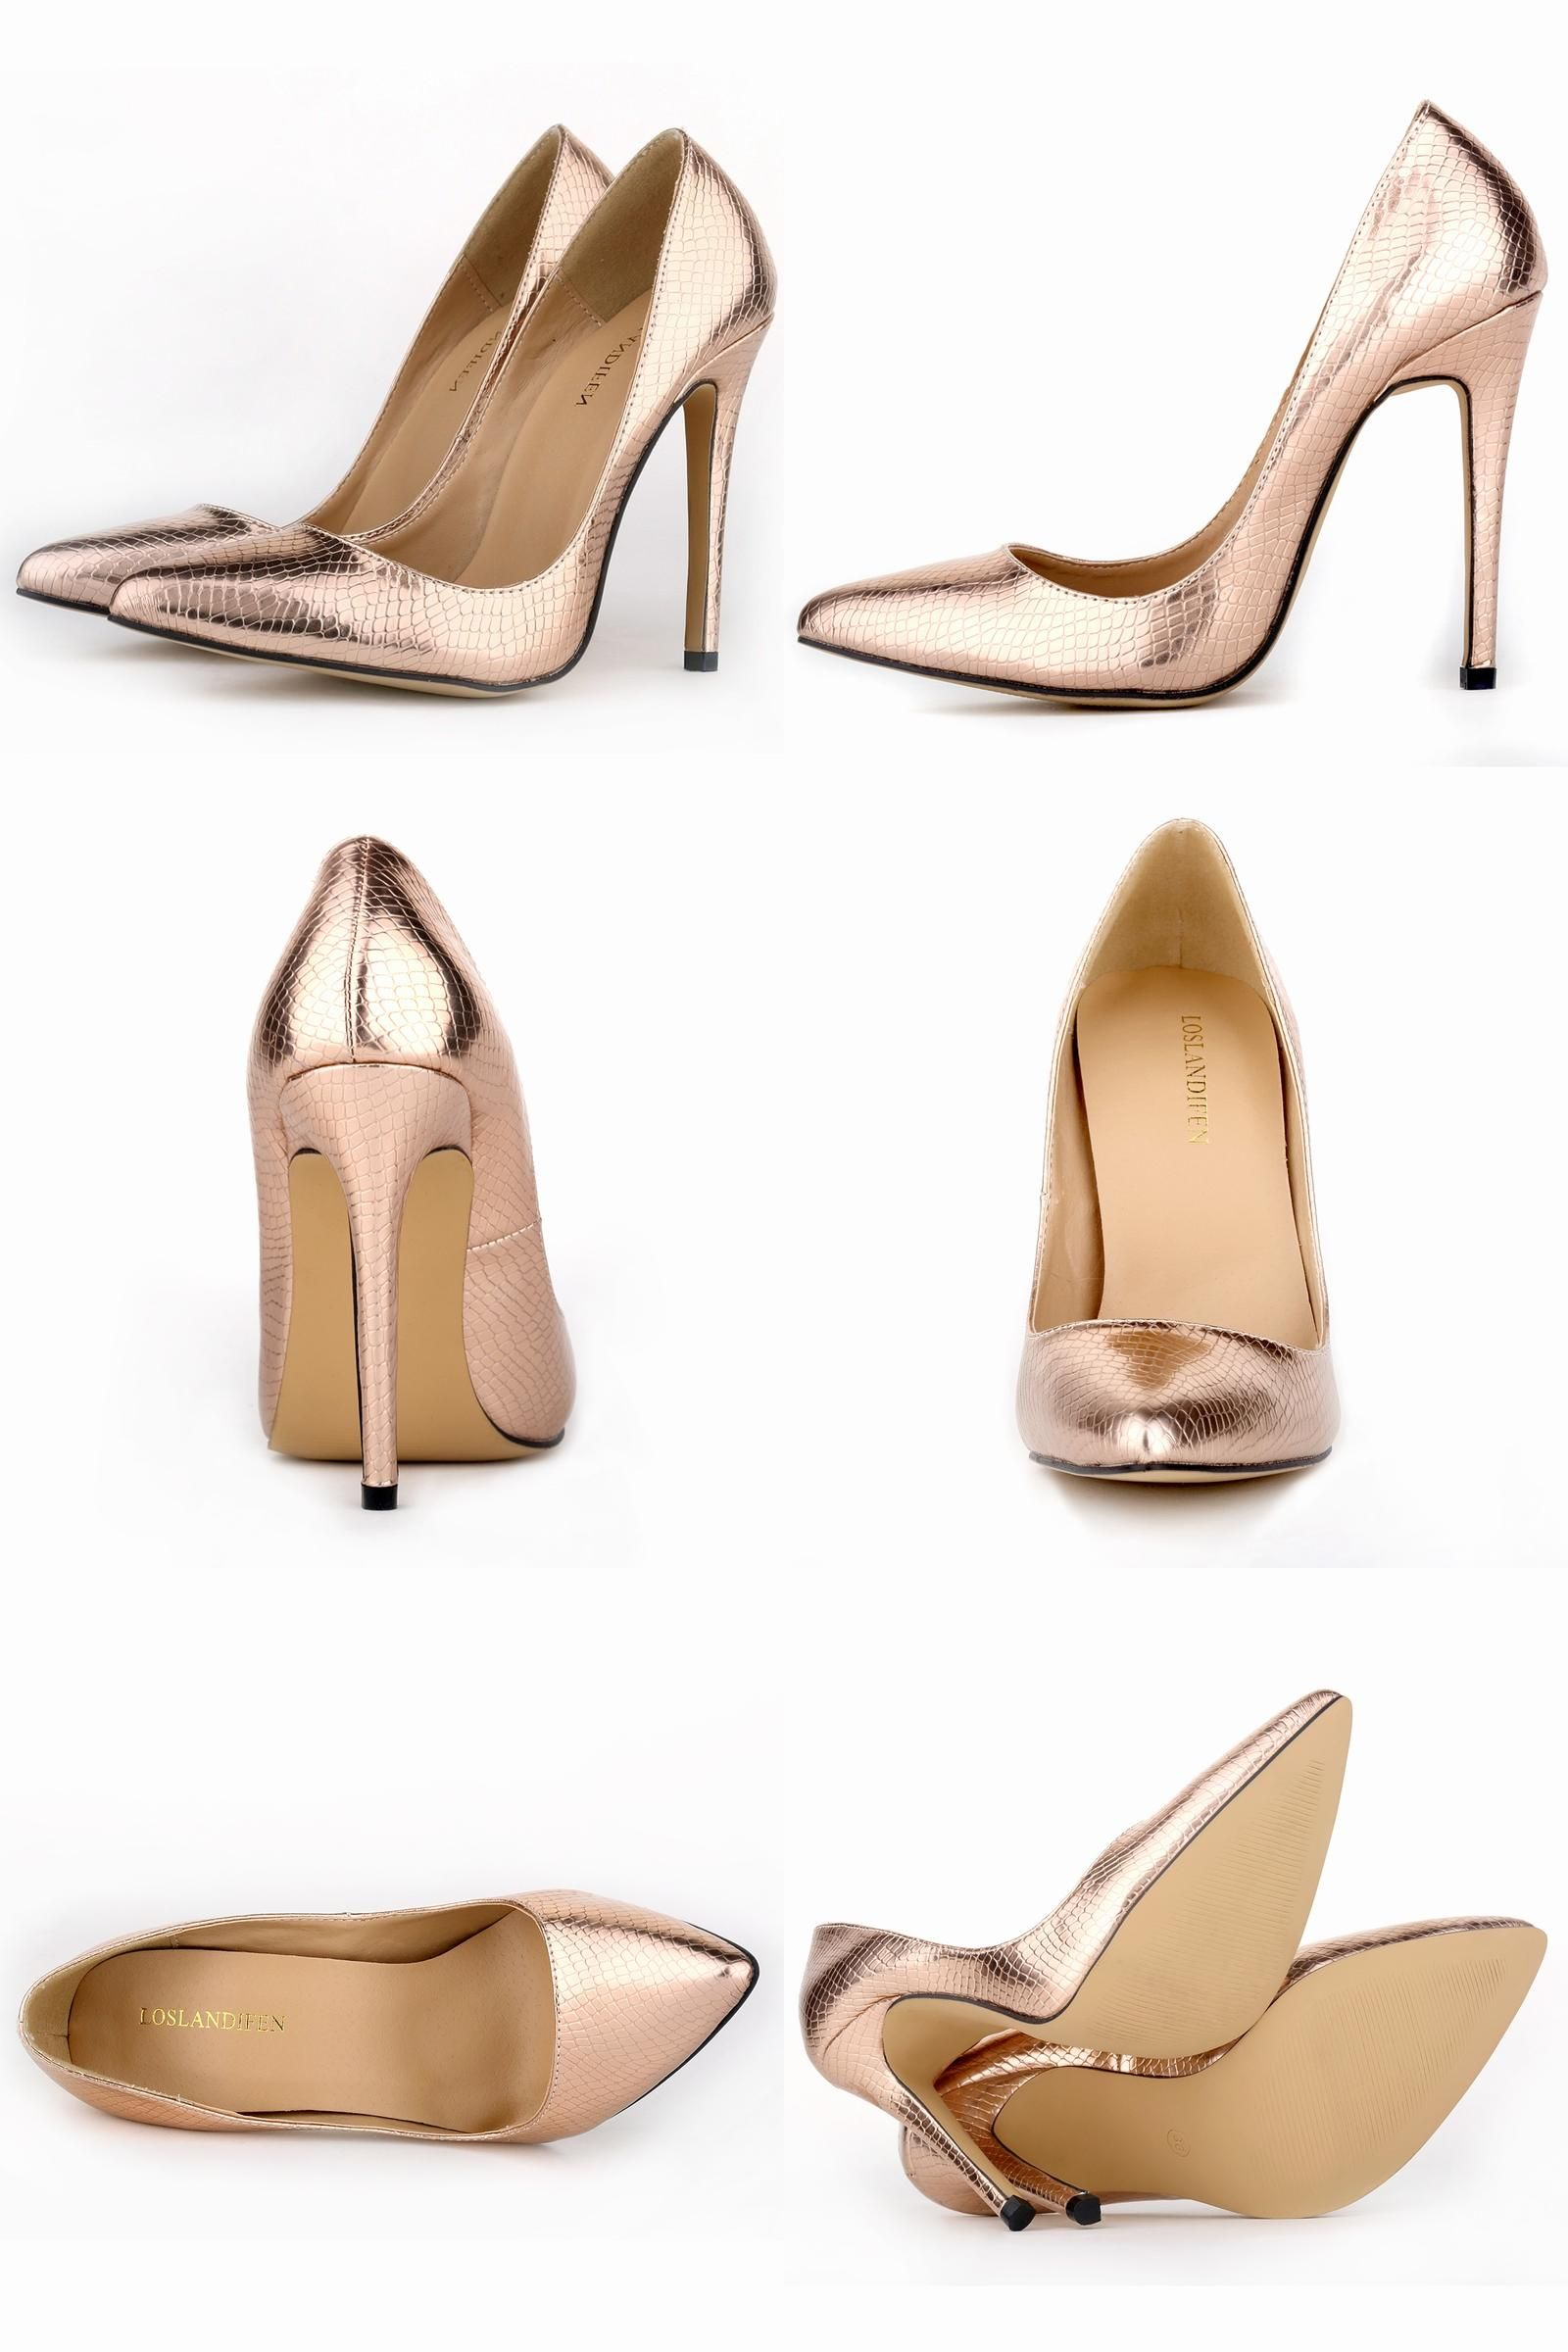 e47bc637afd9  Visit to Buy  New Loslandifen women pumps high heels shoes woman pointed  toe sexy